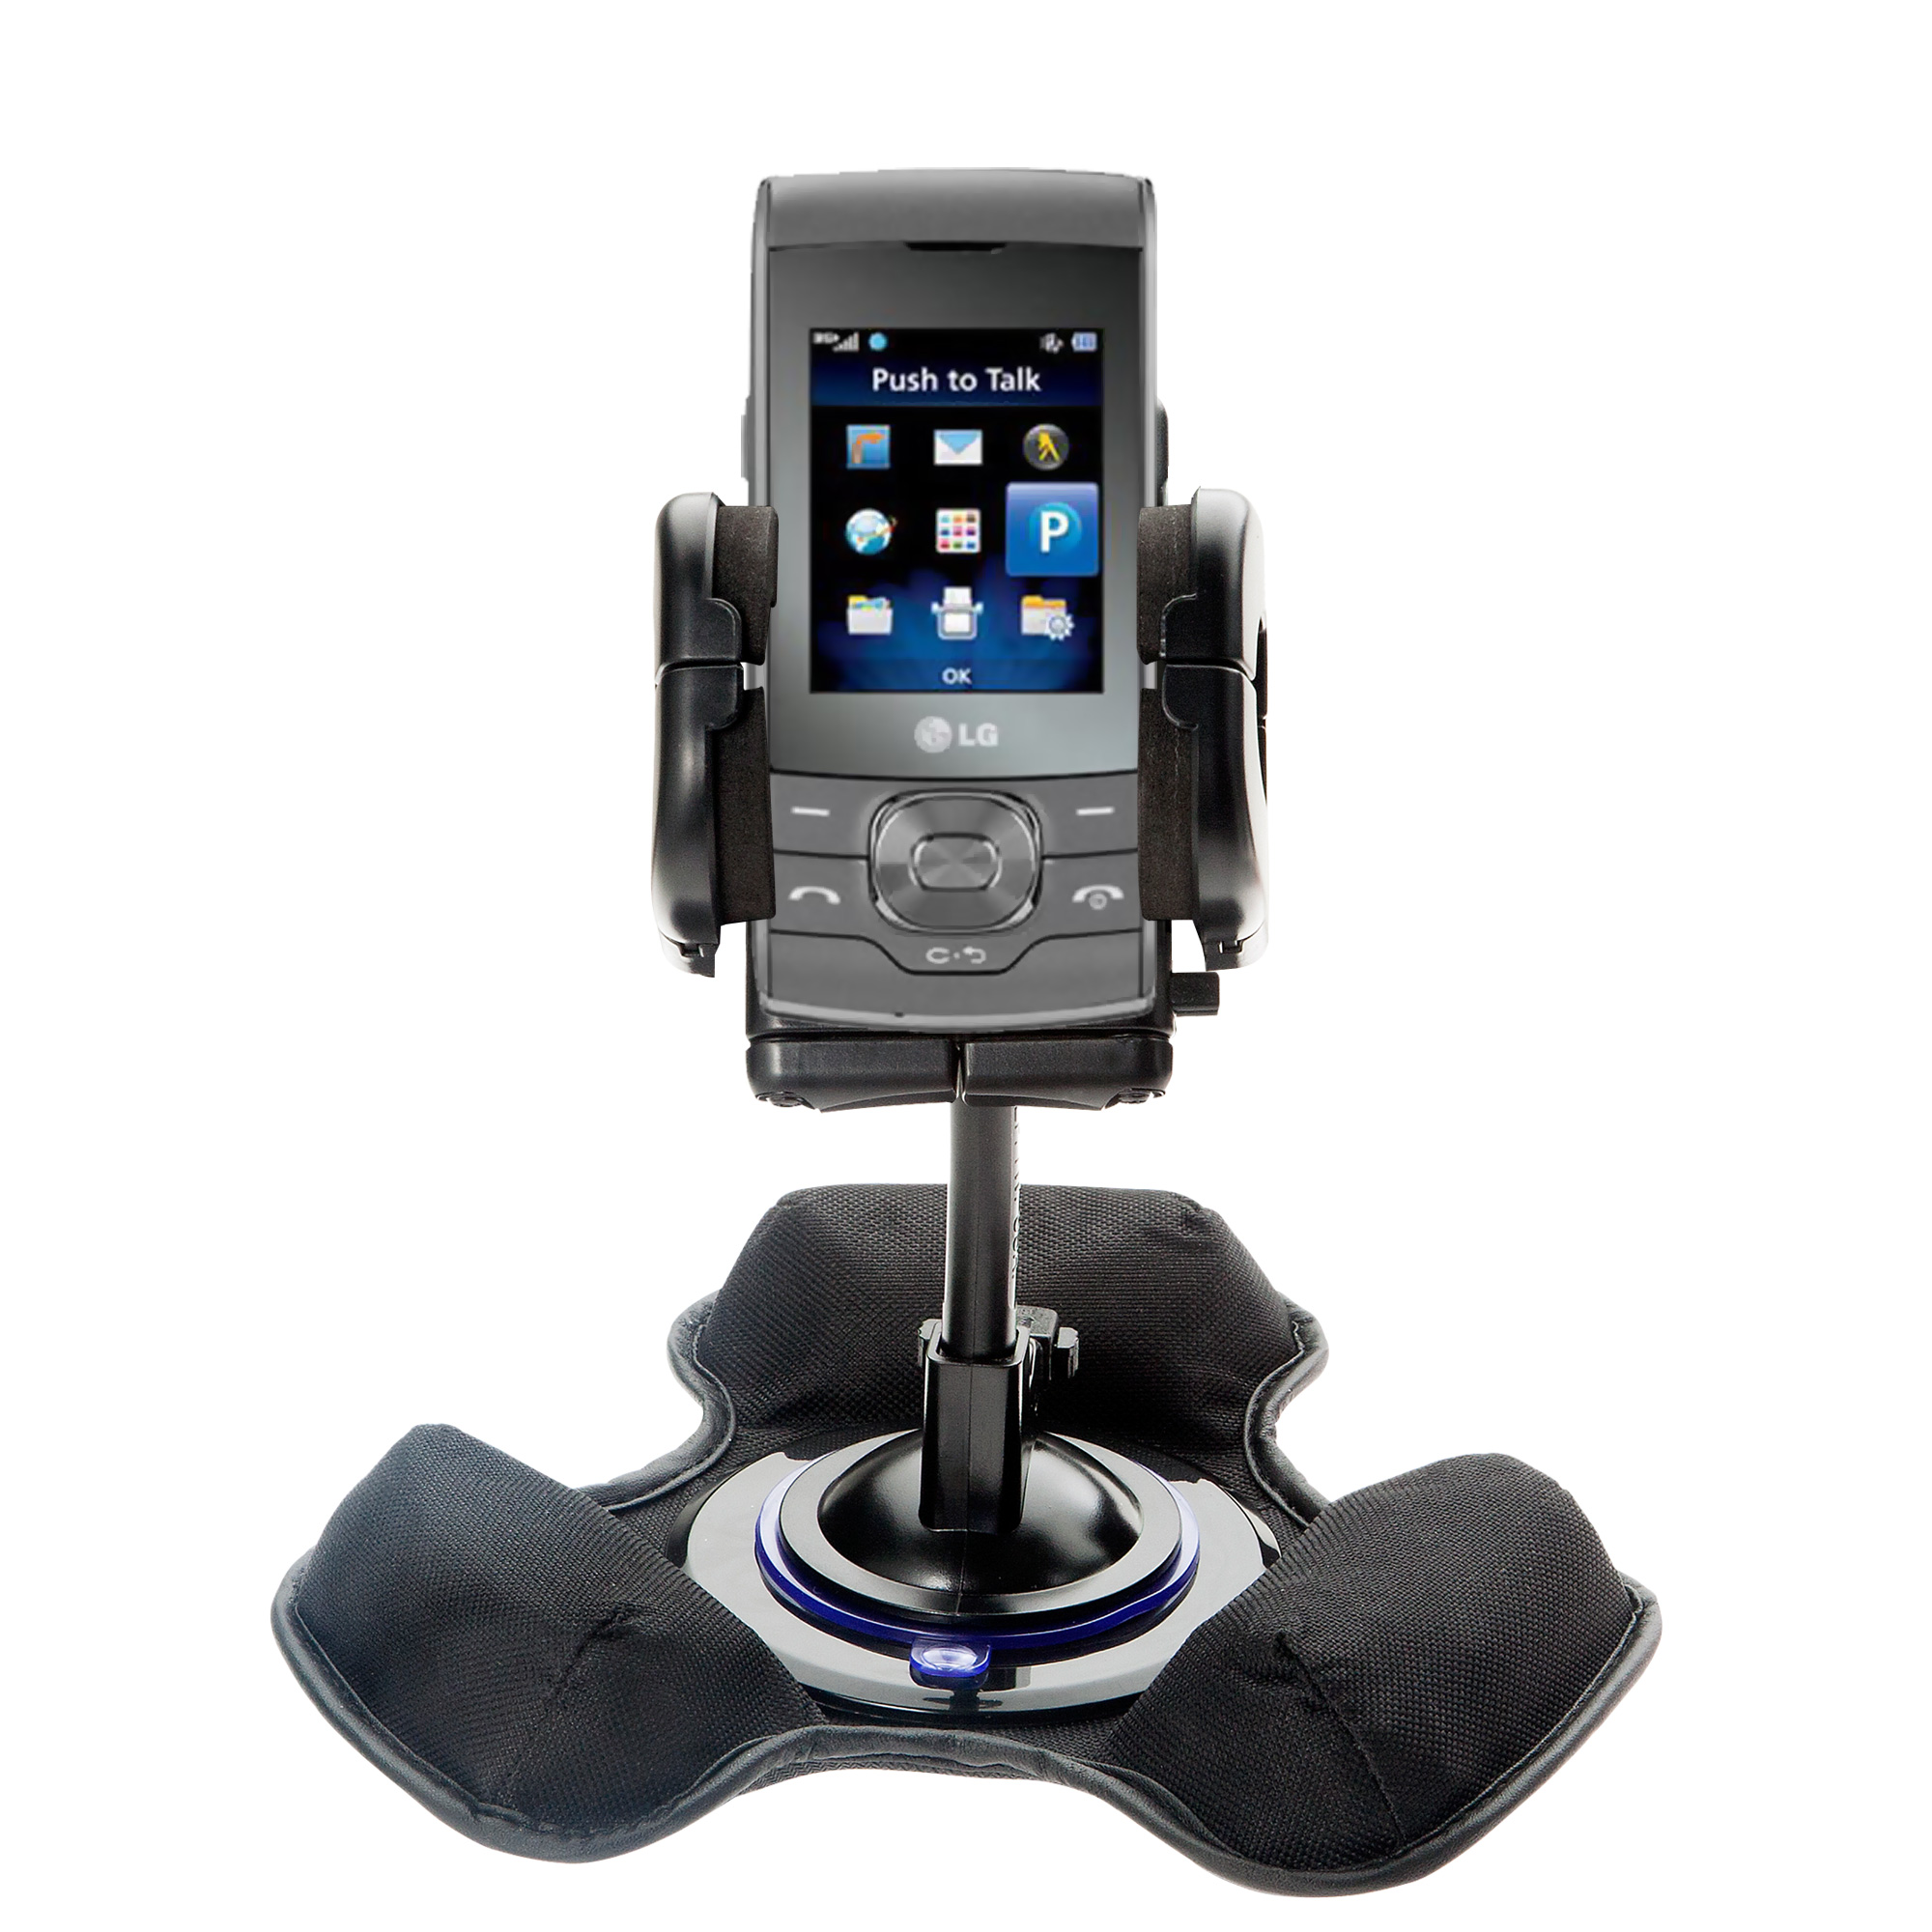 Dash and Windshield Holder compatible with the LG GU292